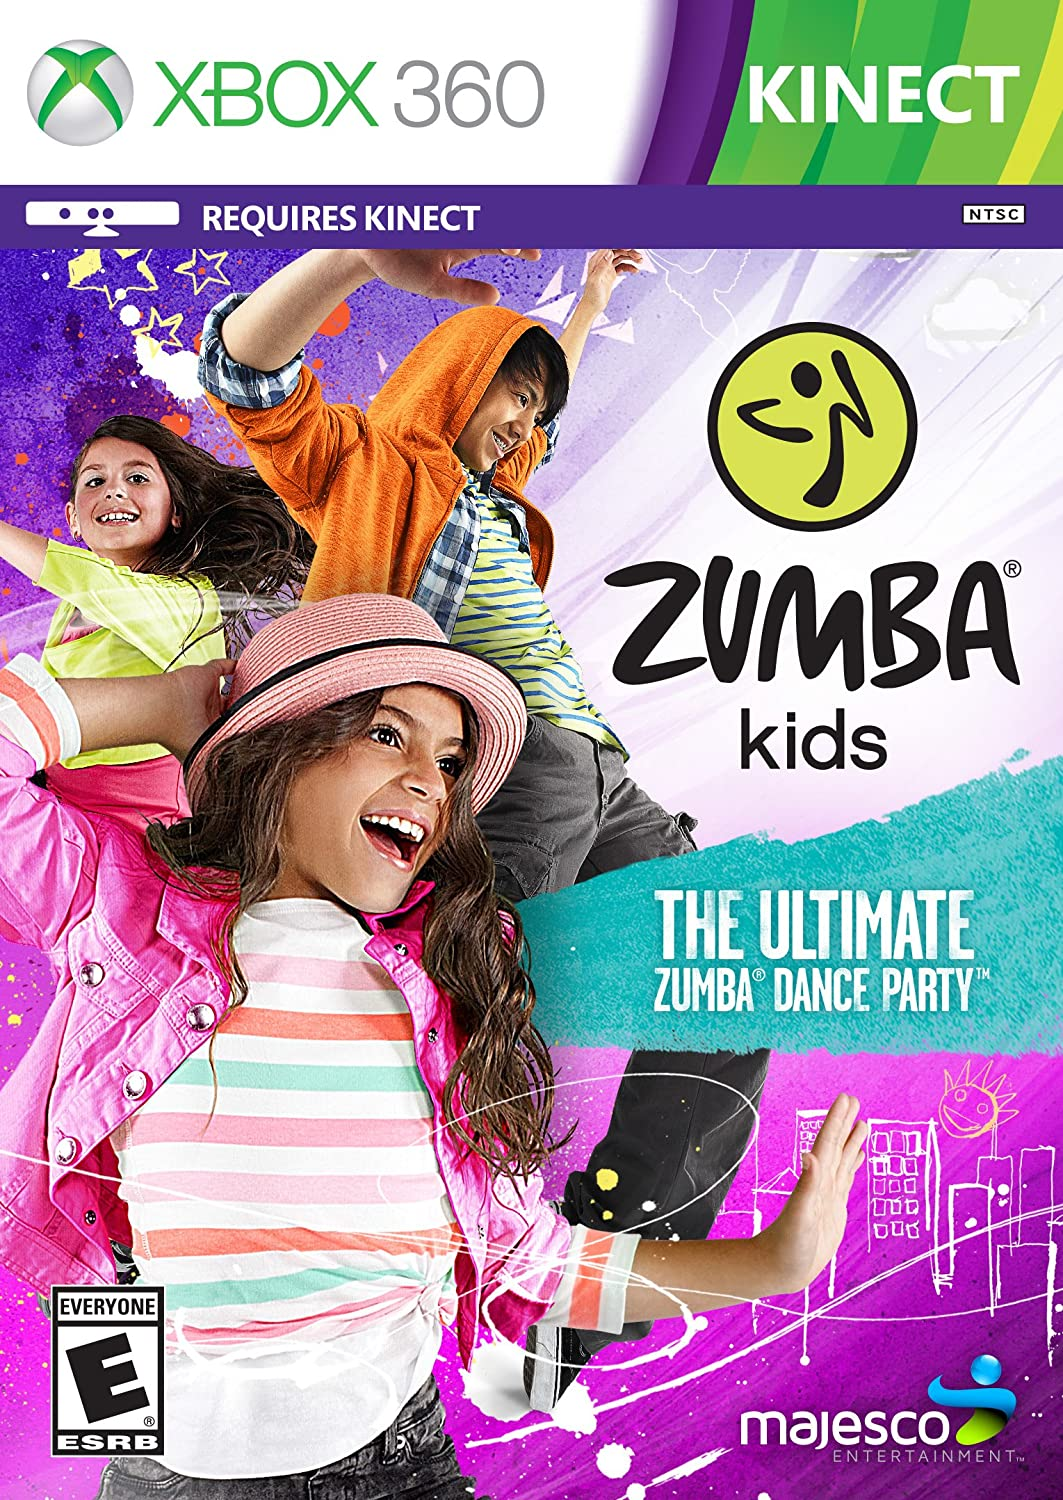 http://www.amazon.com/Zumba-Kids-Wii-Nintendo/dp/B00E8RVP0U/ref=sr_1_1?ie=UTF8&qid=1386861160&sr=8-1&keywords=zumba+kids